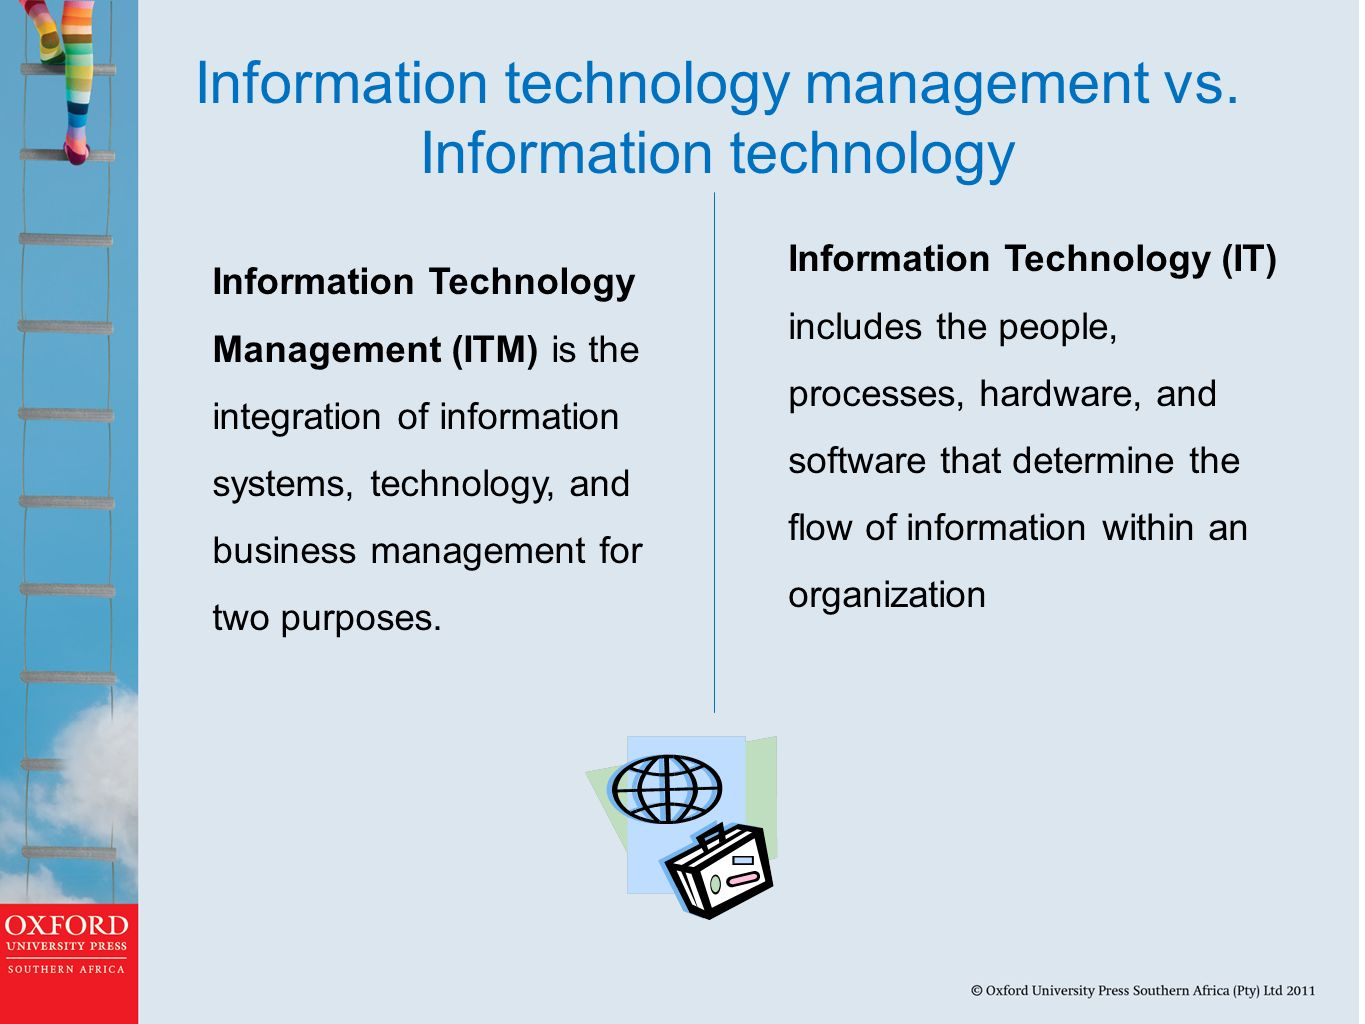 management of information technology It management is the discipline whereby all of the information technology resources of a firm are managed in accordance with its needs and priorities these resources may include tangible investments like computer hardware, software, data, networks and data centre facilities, as well as the staff who are hired to maintain them.